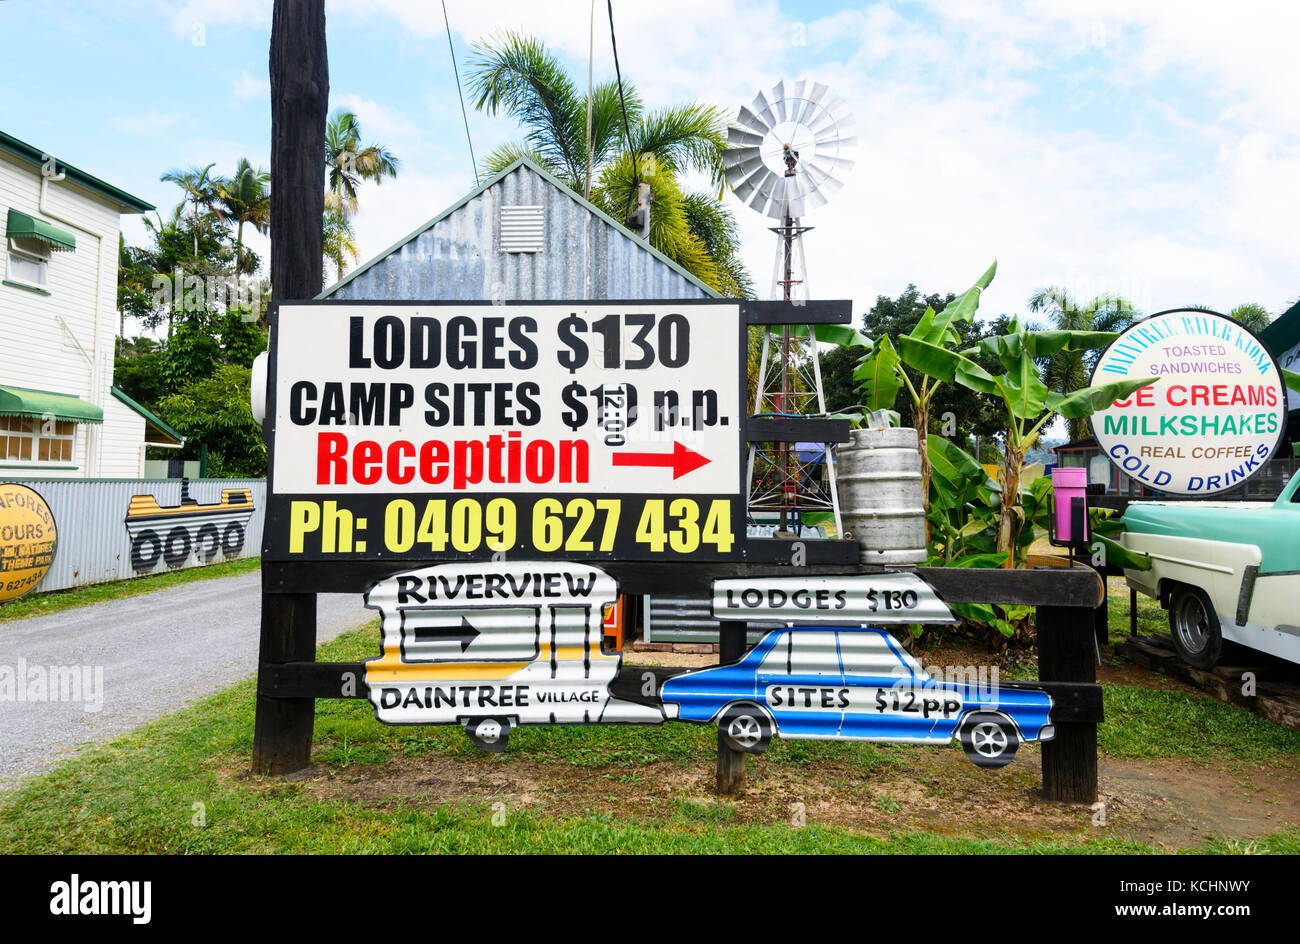 Sign for a campsite at Daintree Village, Far North Queensland, FNQ, QLD, Australia - Stock Image